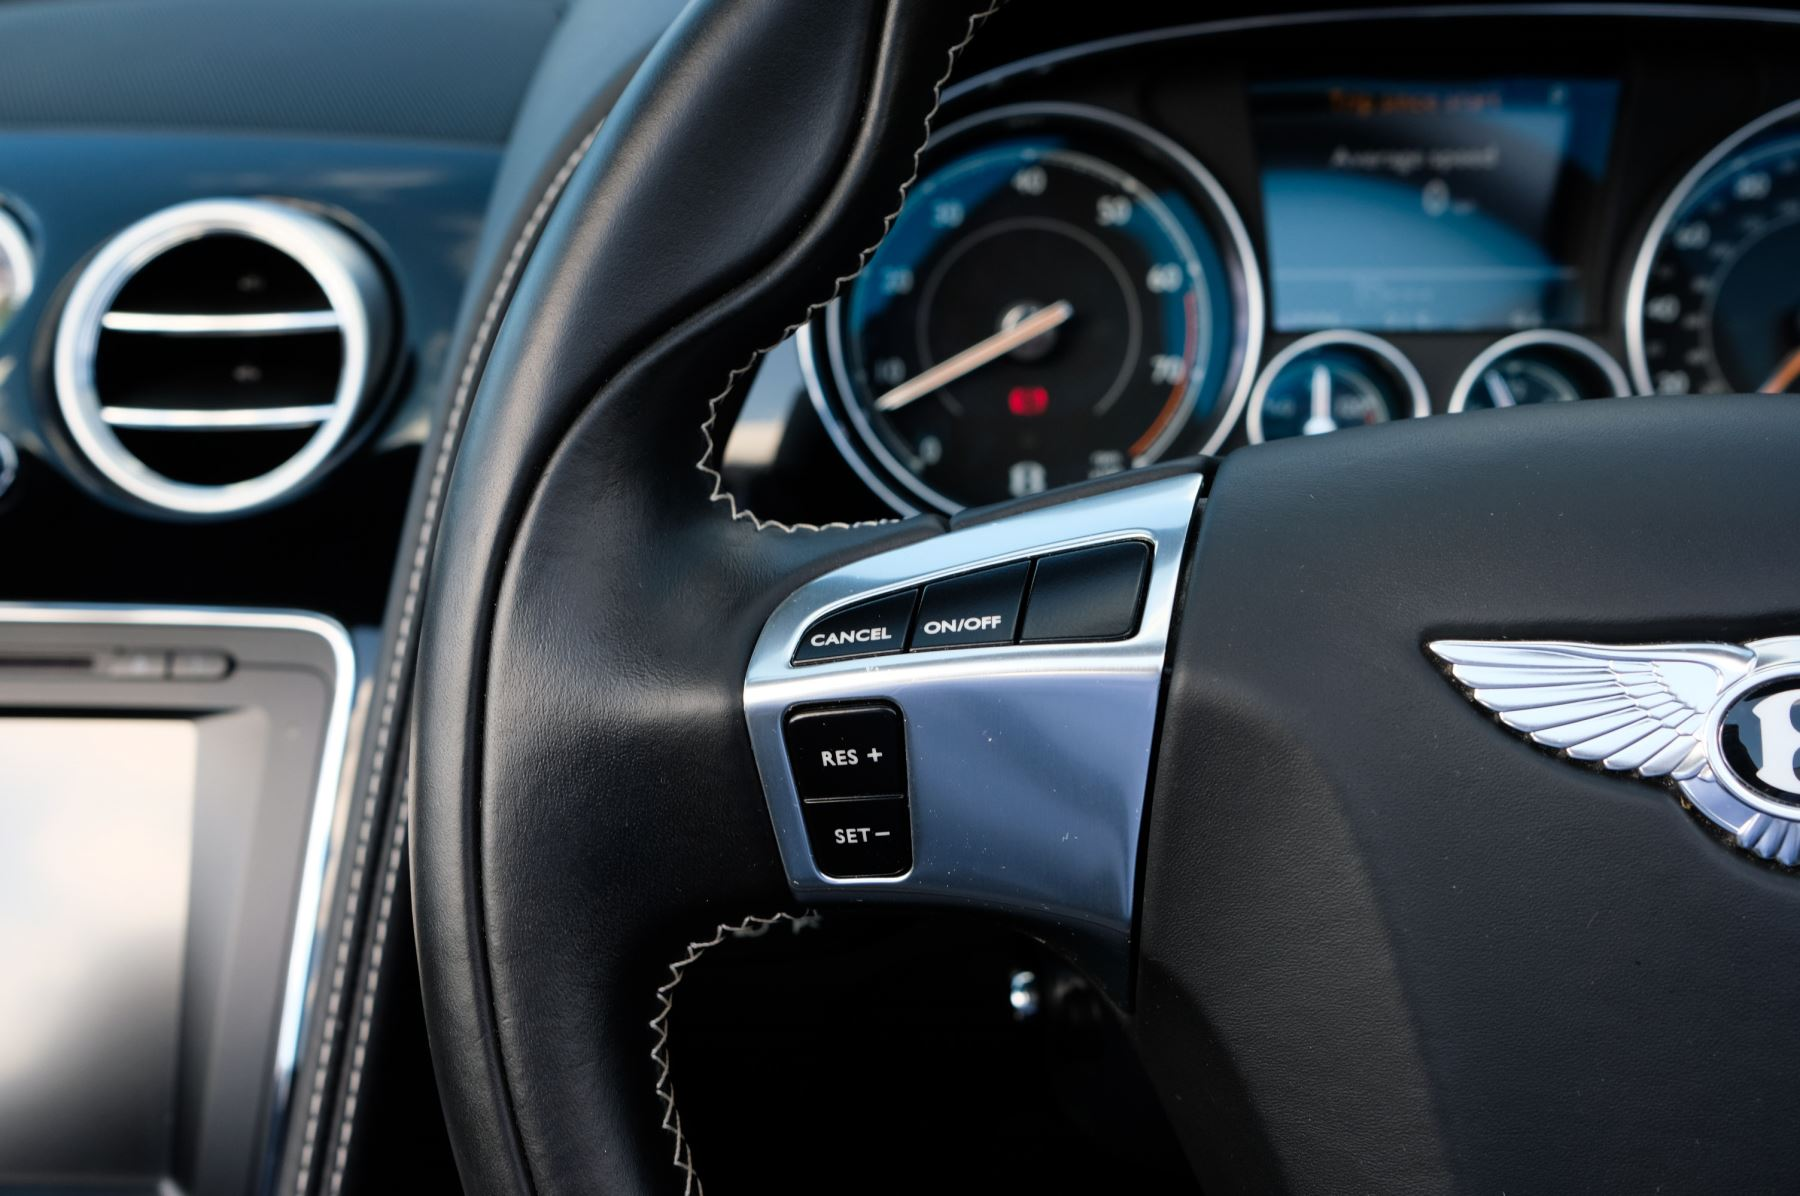 Bentley Continental GTC 4.0 V8 S Mulliner Driving Spec - Ventilated Front Seats with Massage Function image 20